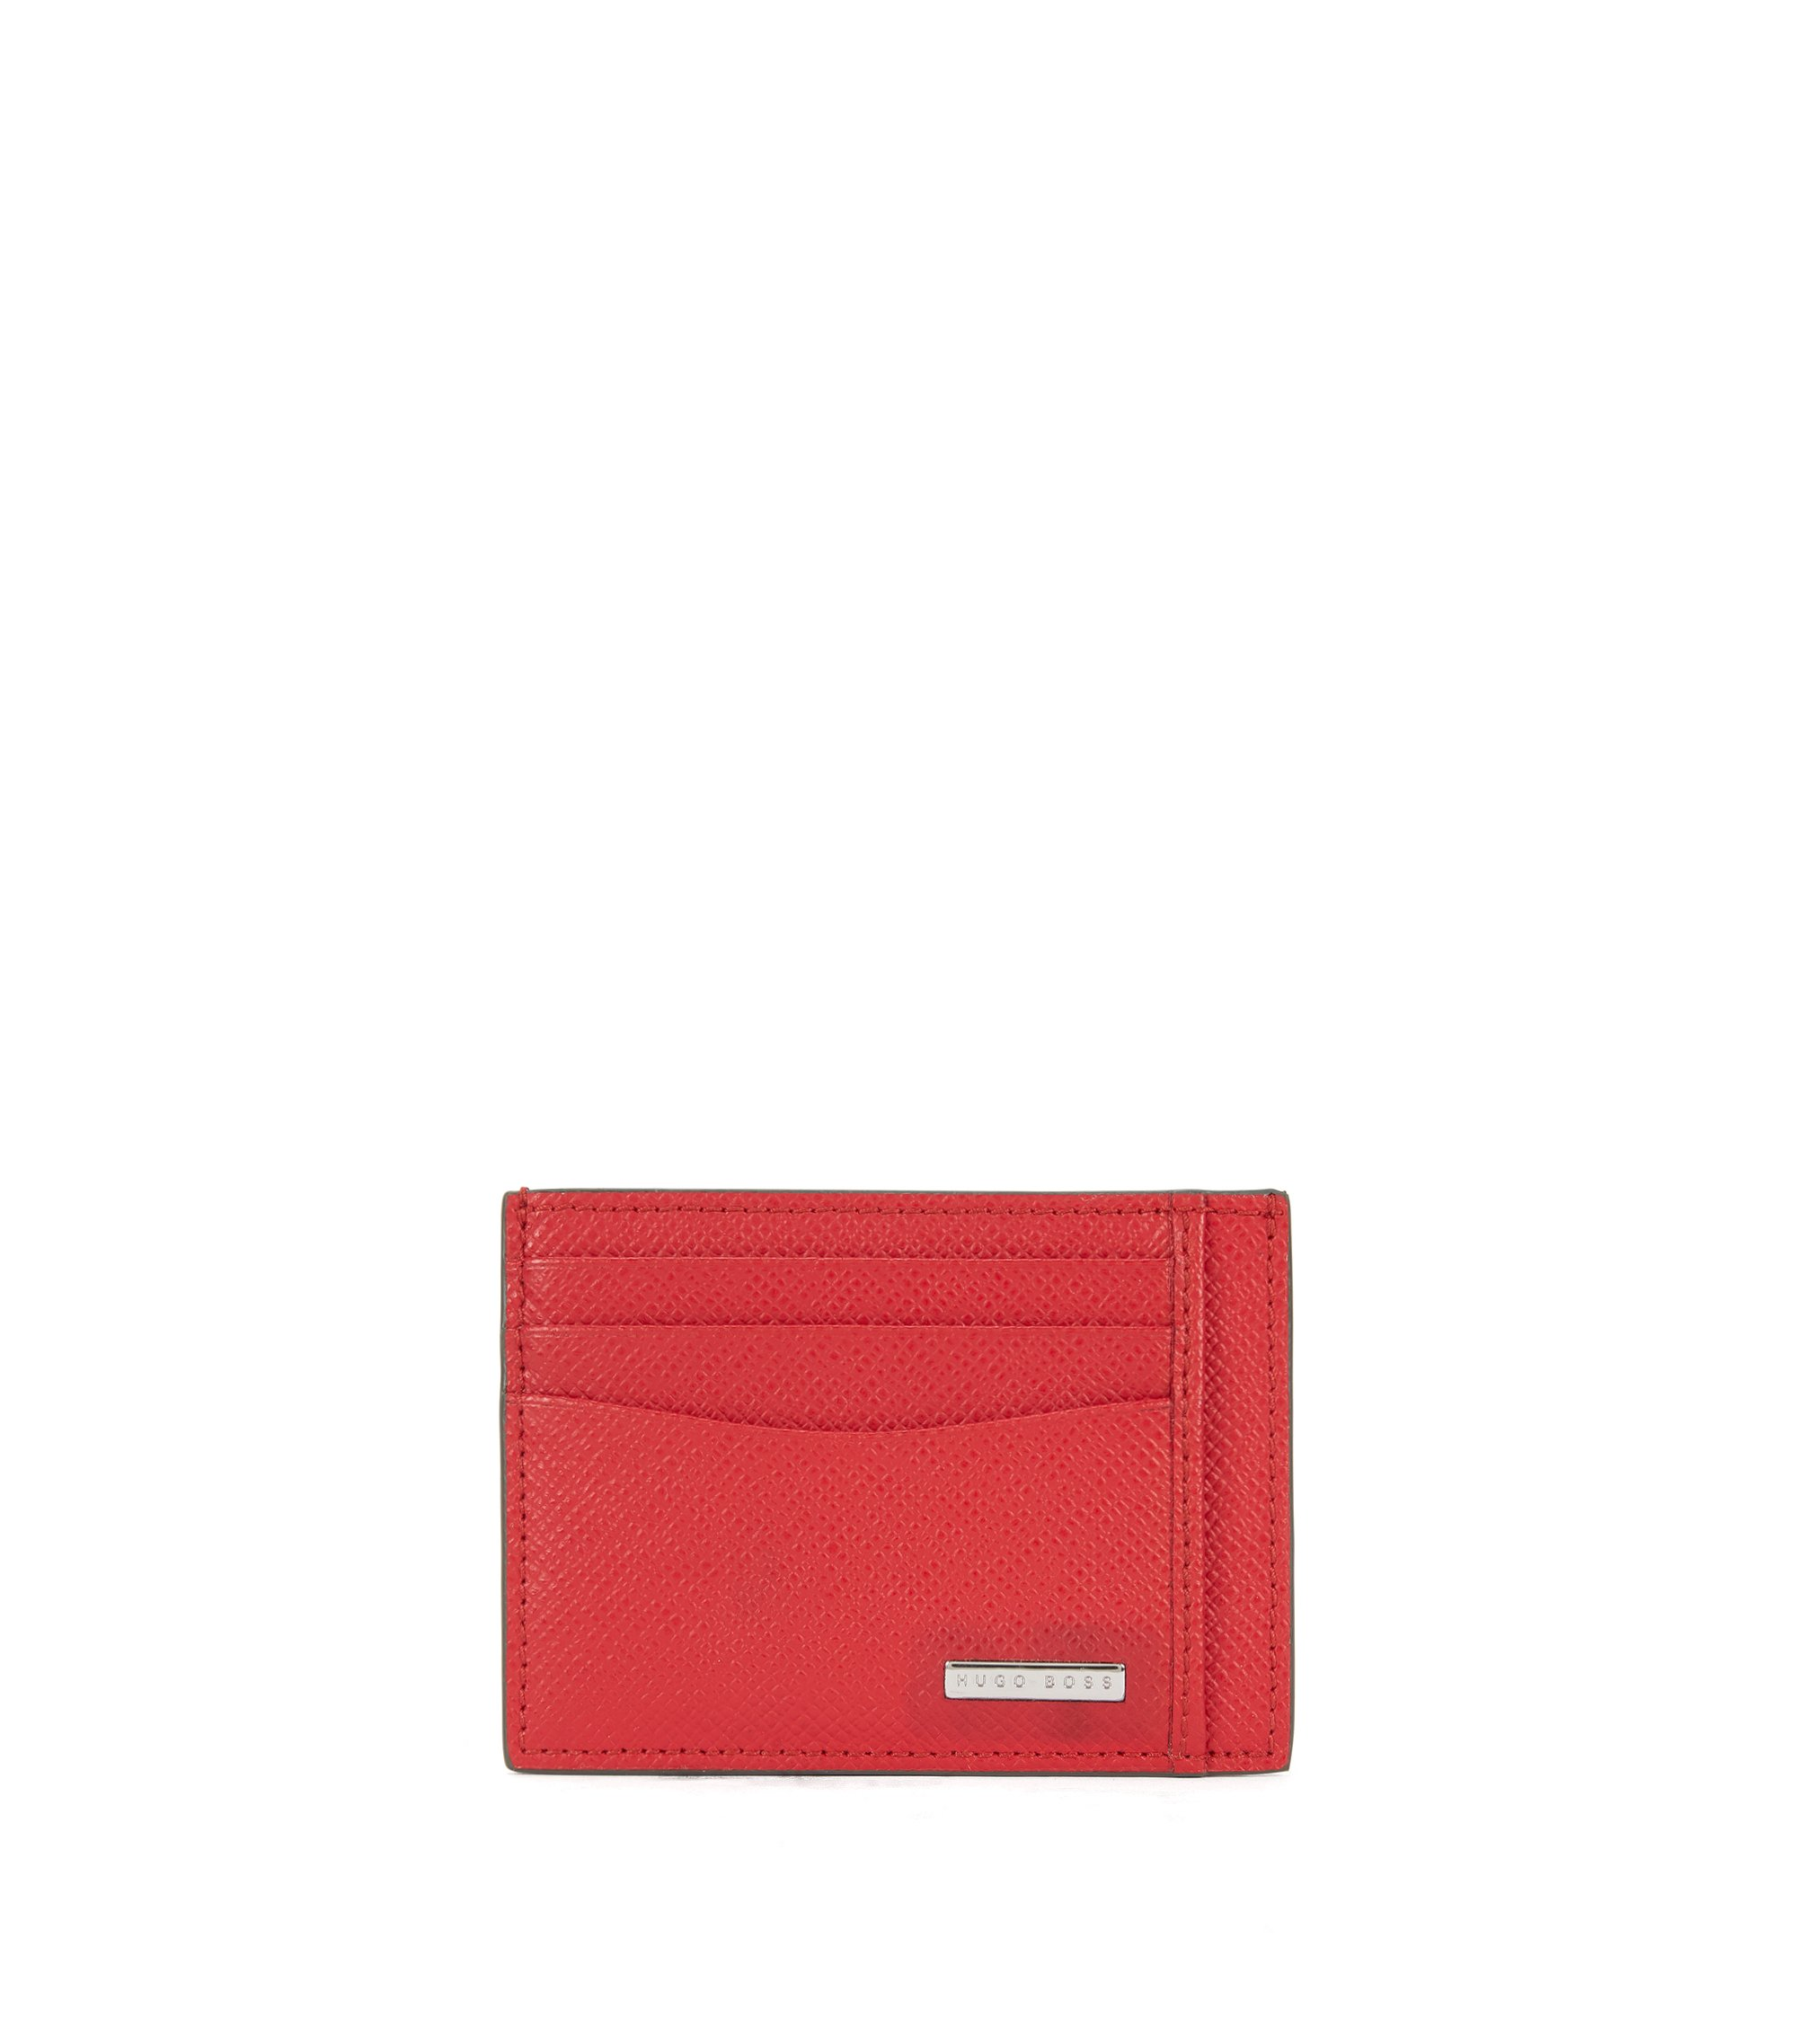 Signature Collection card holder in palmellato leather, Red